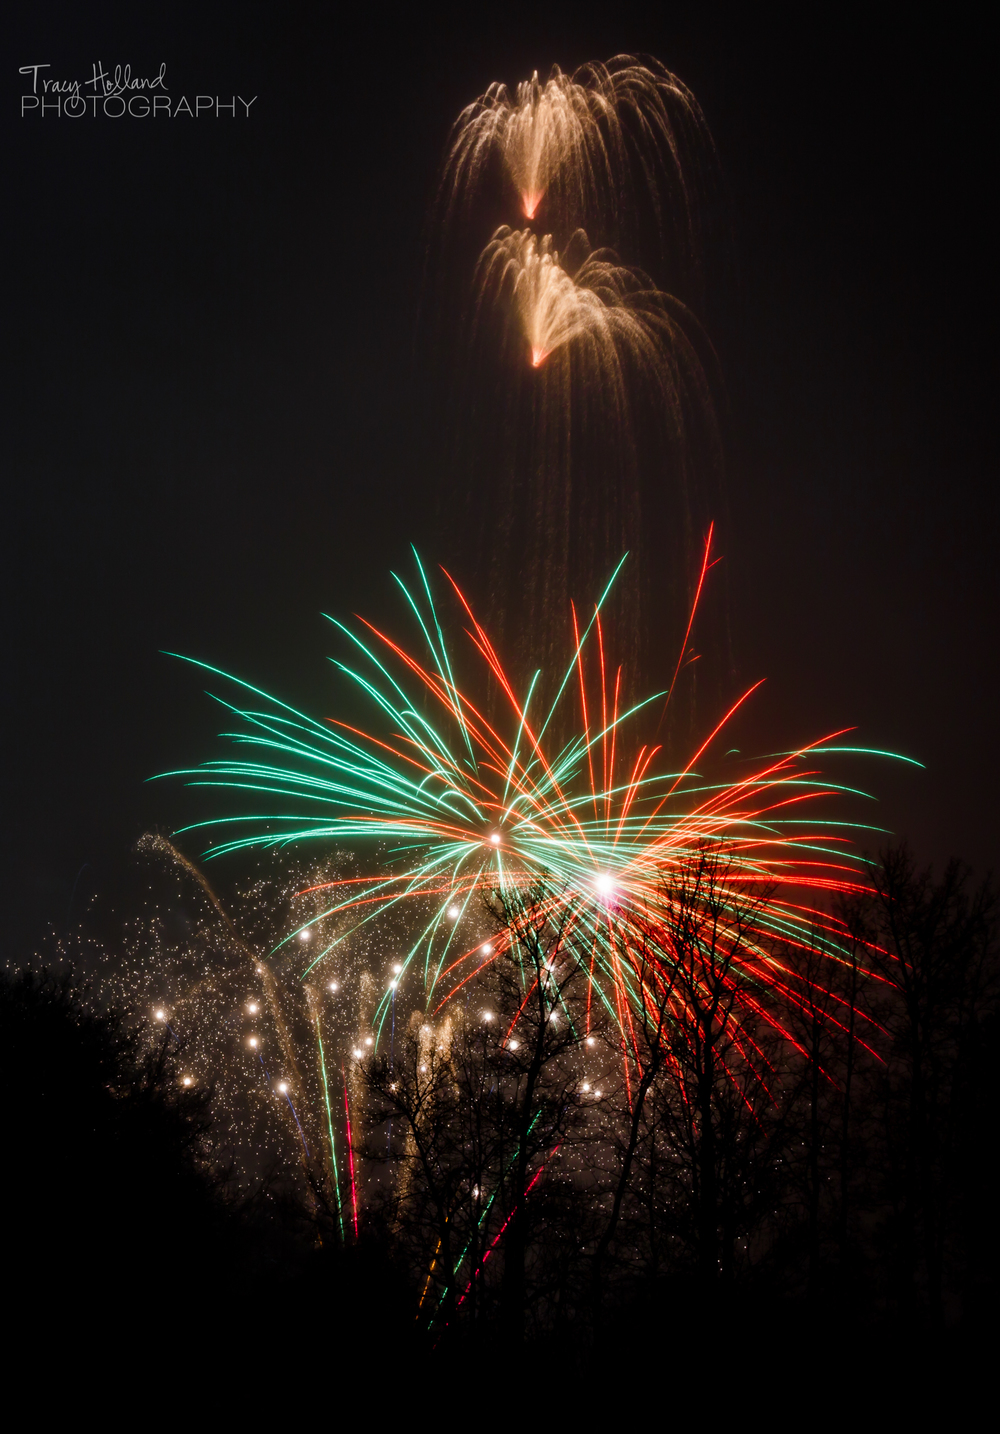 New Year 15 Fireworks-9695-2.jpg